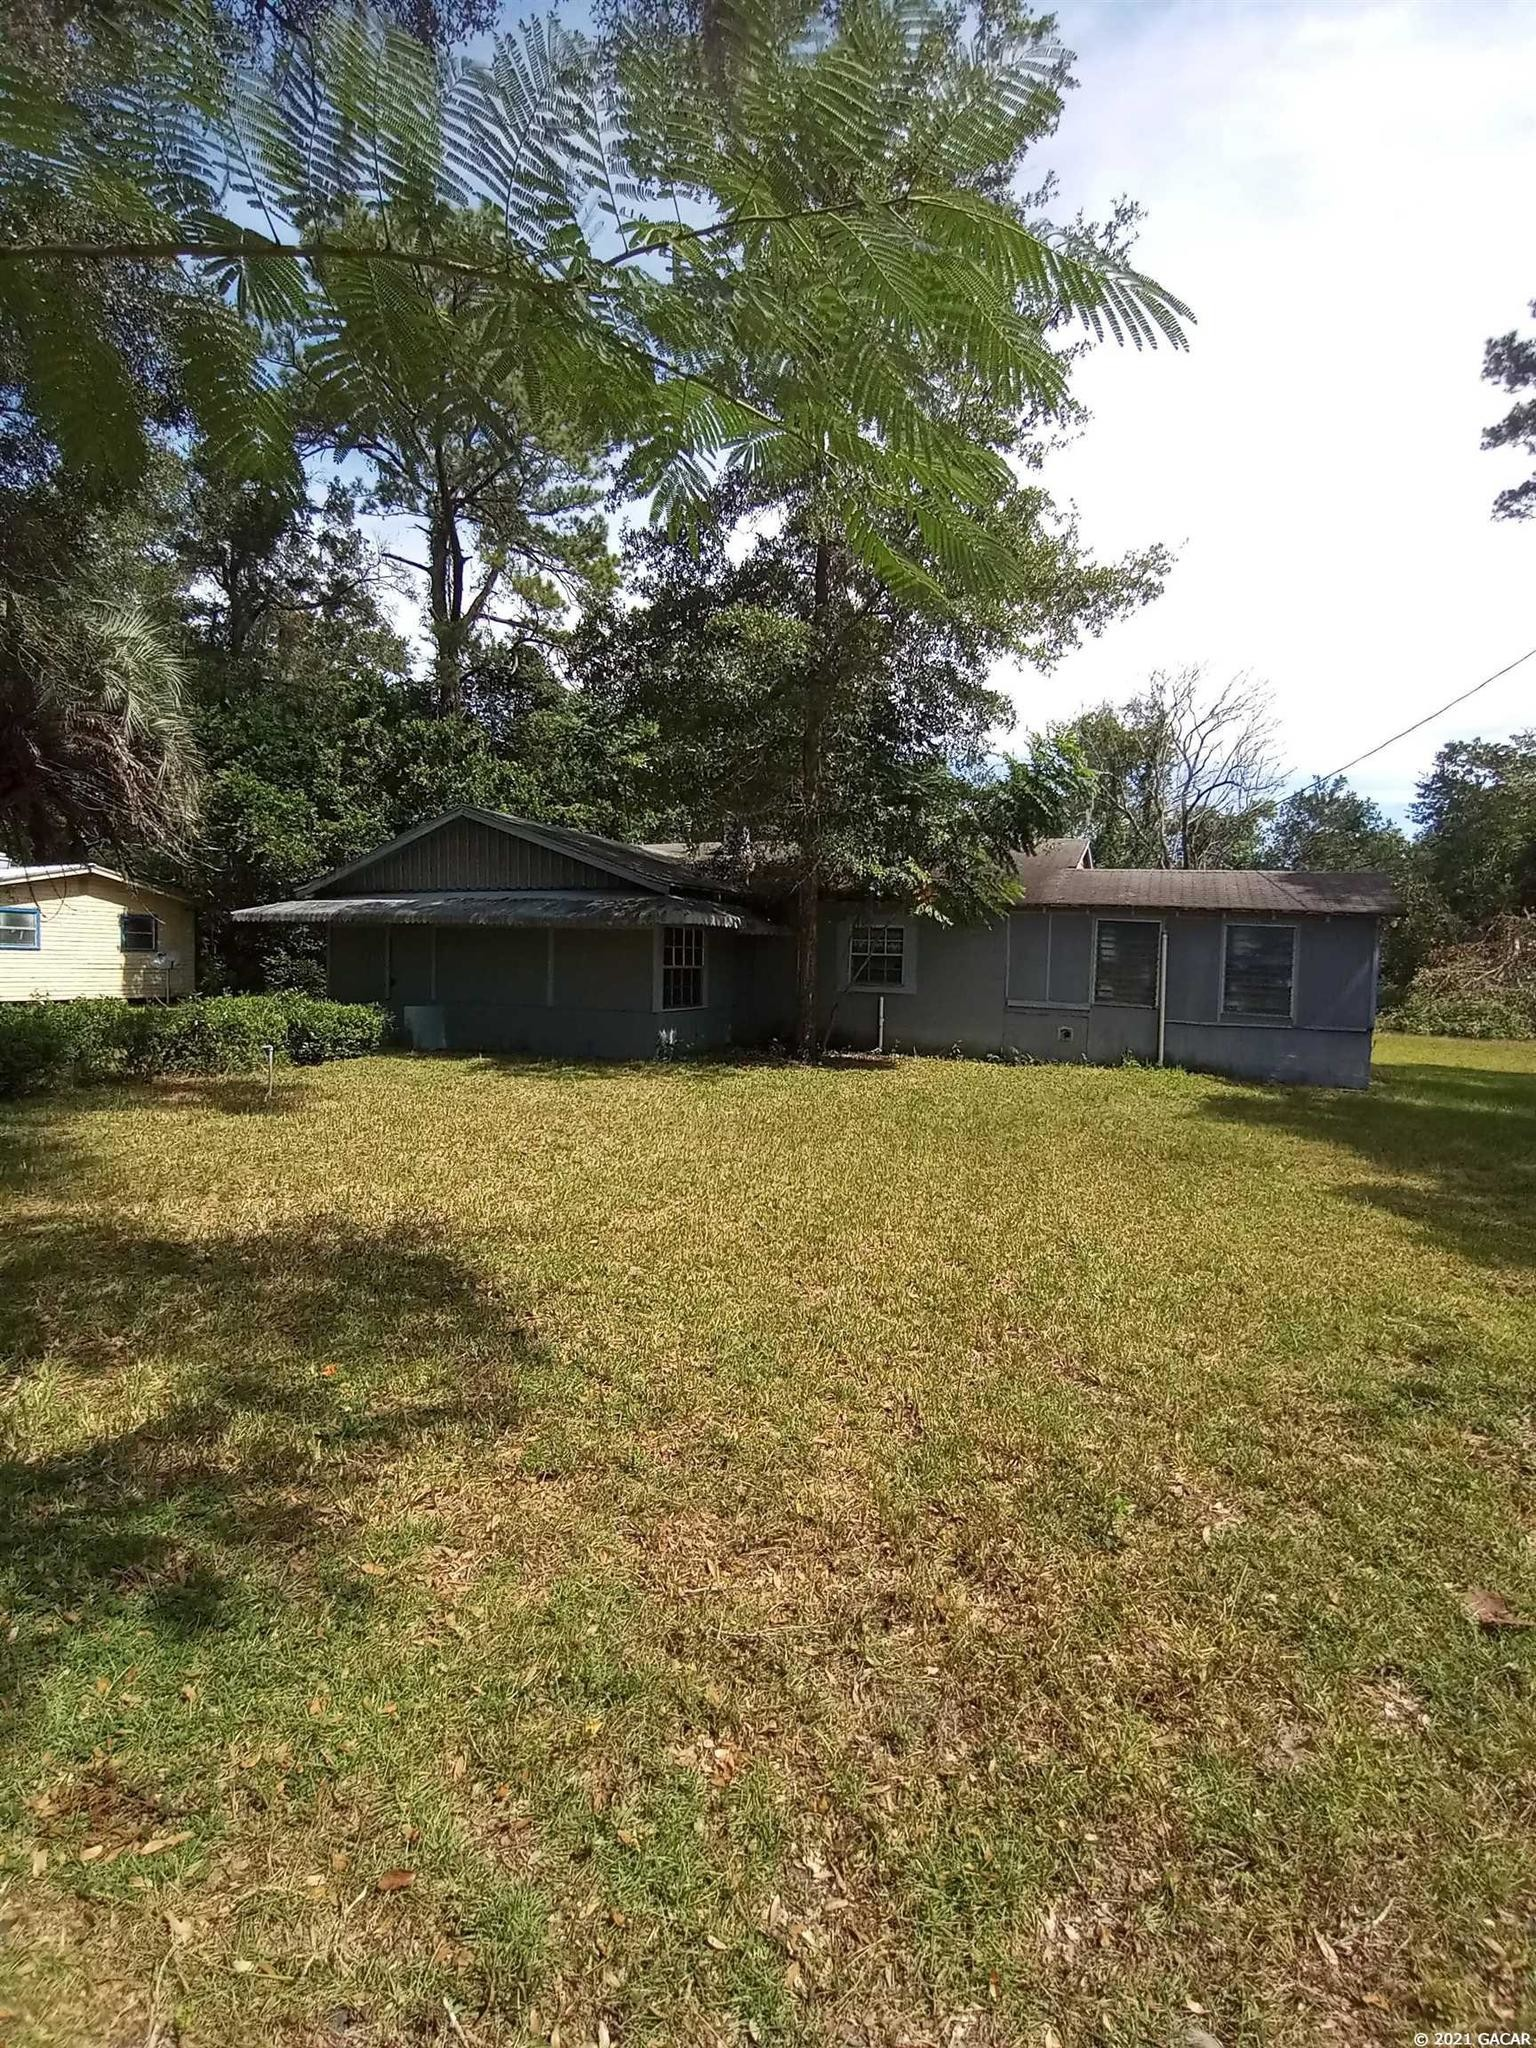 3-Bedroom House In East Gainesville